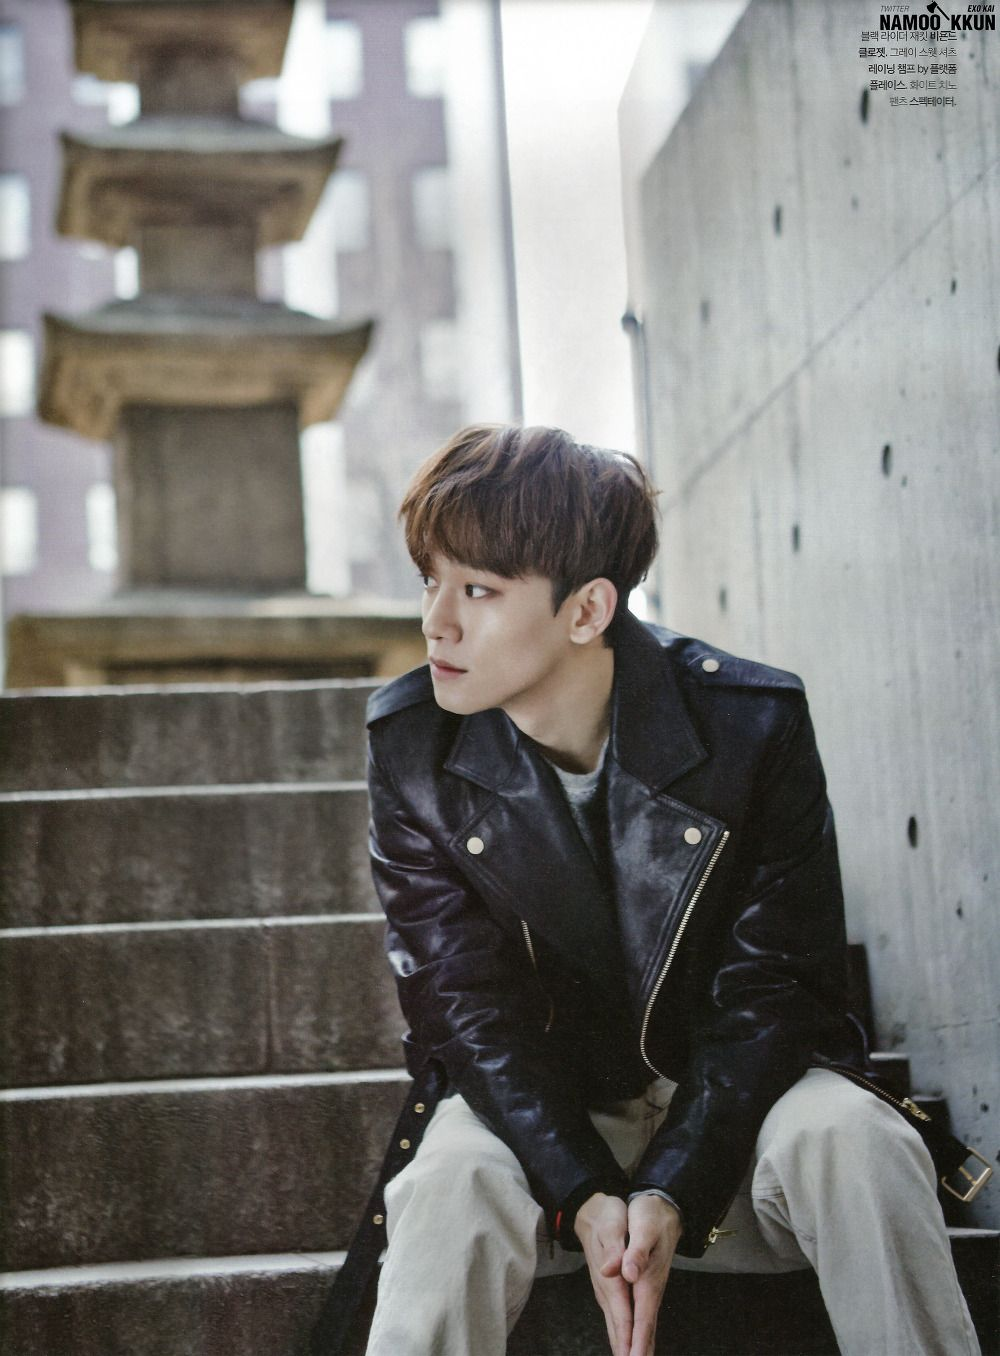 Leather Jacket Chen Of Exo For The Celebrity January 2015